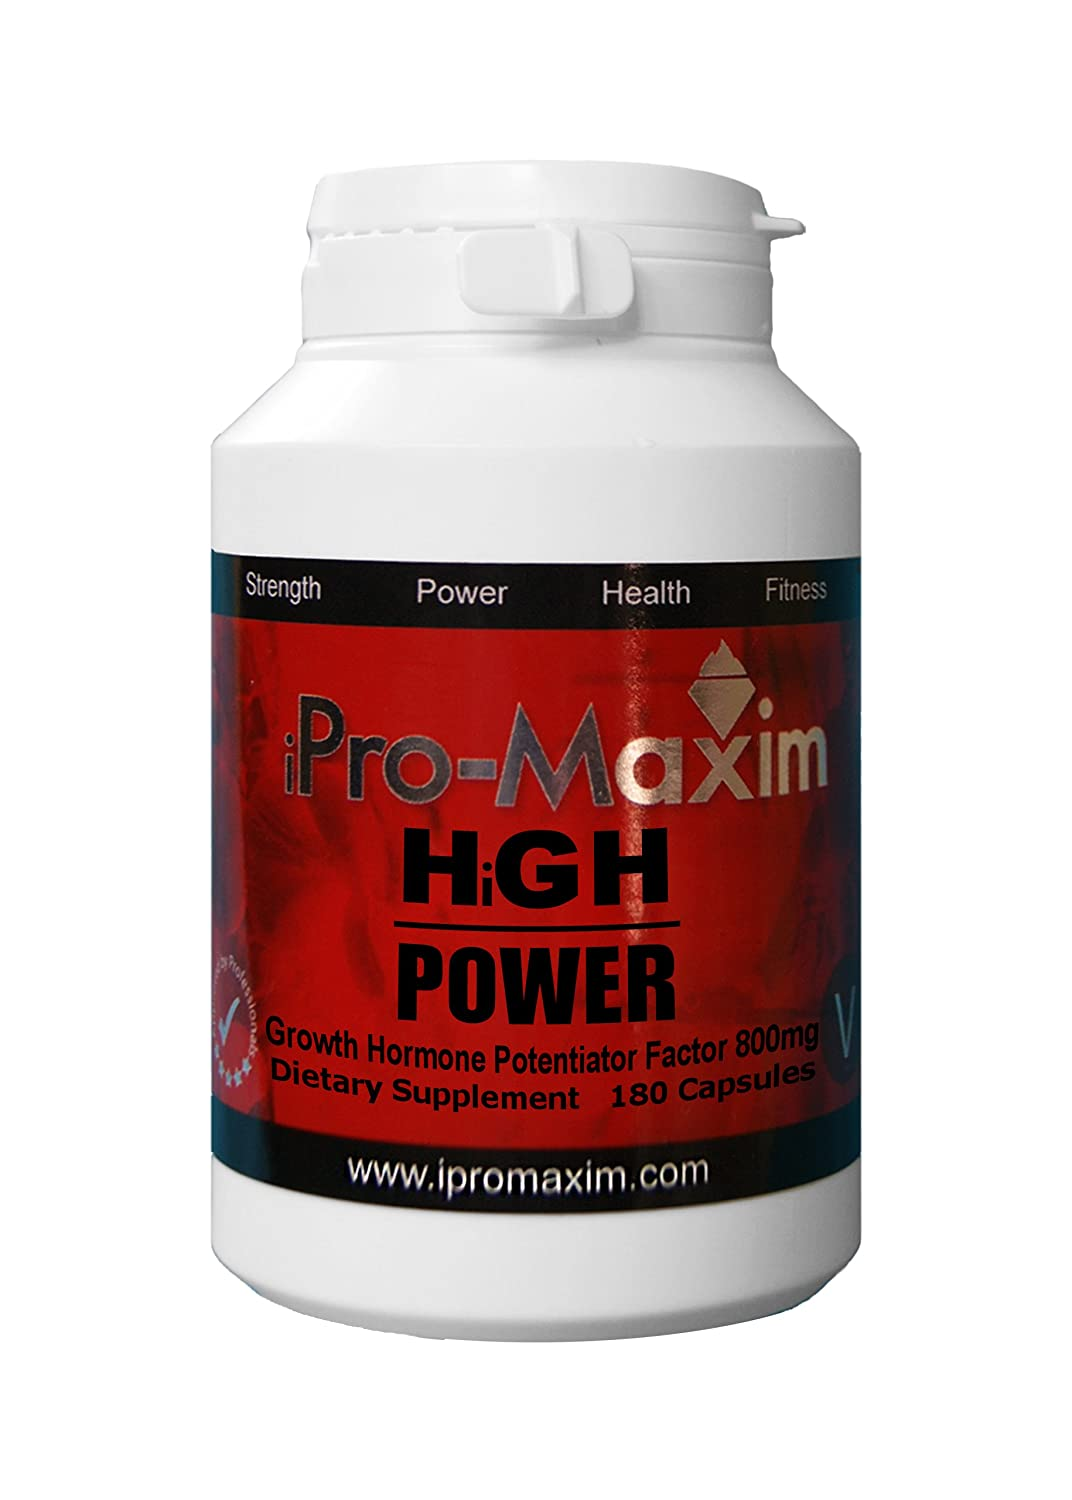 HiGH POWER 180 capsules  800 mg Revised NEW formula, A supplement for men &  women  Comprehensive and NATURAL product   Enhances -Biceps, Pectorals,